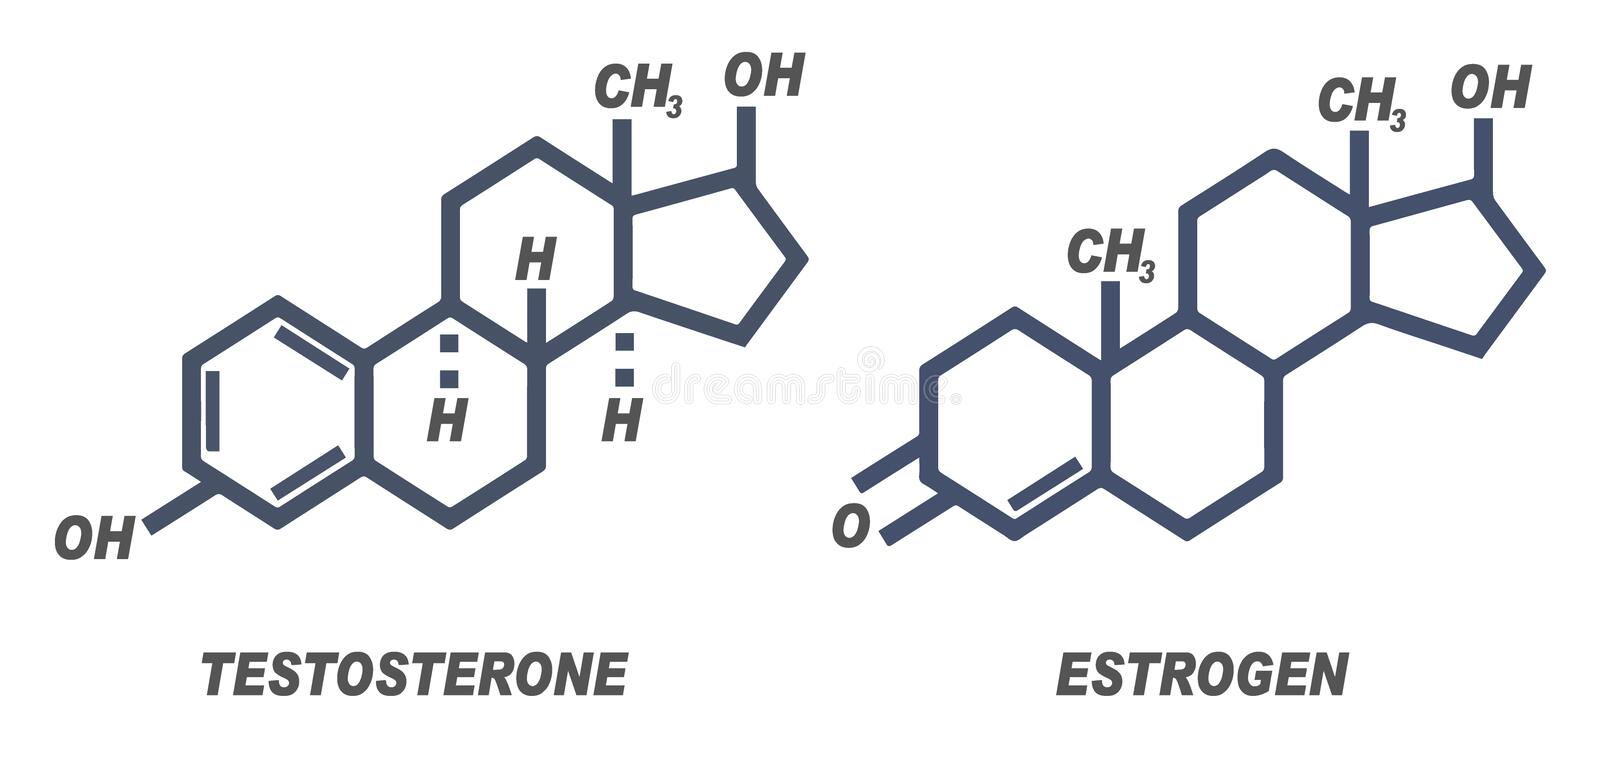 Illustration of chemical formula for male and female hormones Testosterone and Estrogen stock illustration